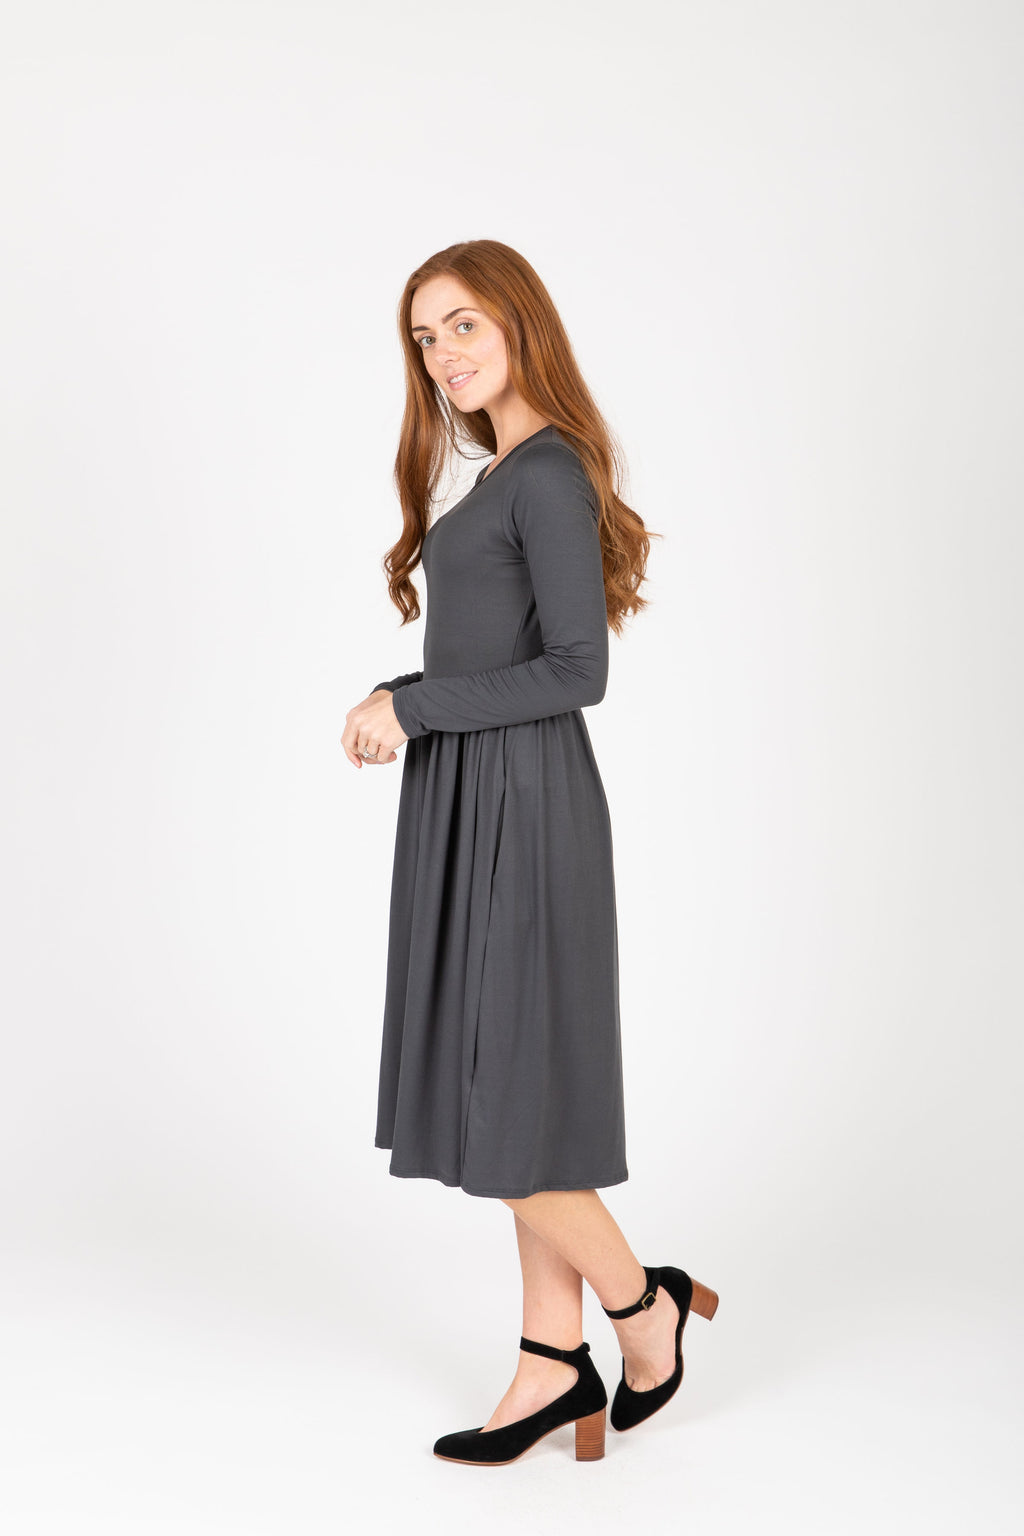 The Rosie Casual Empire Dress in Slate